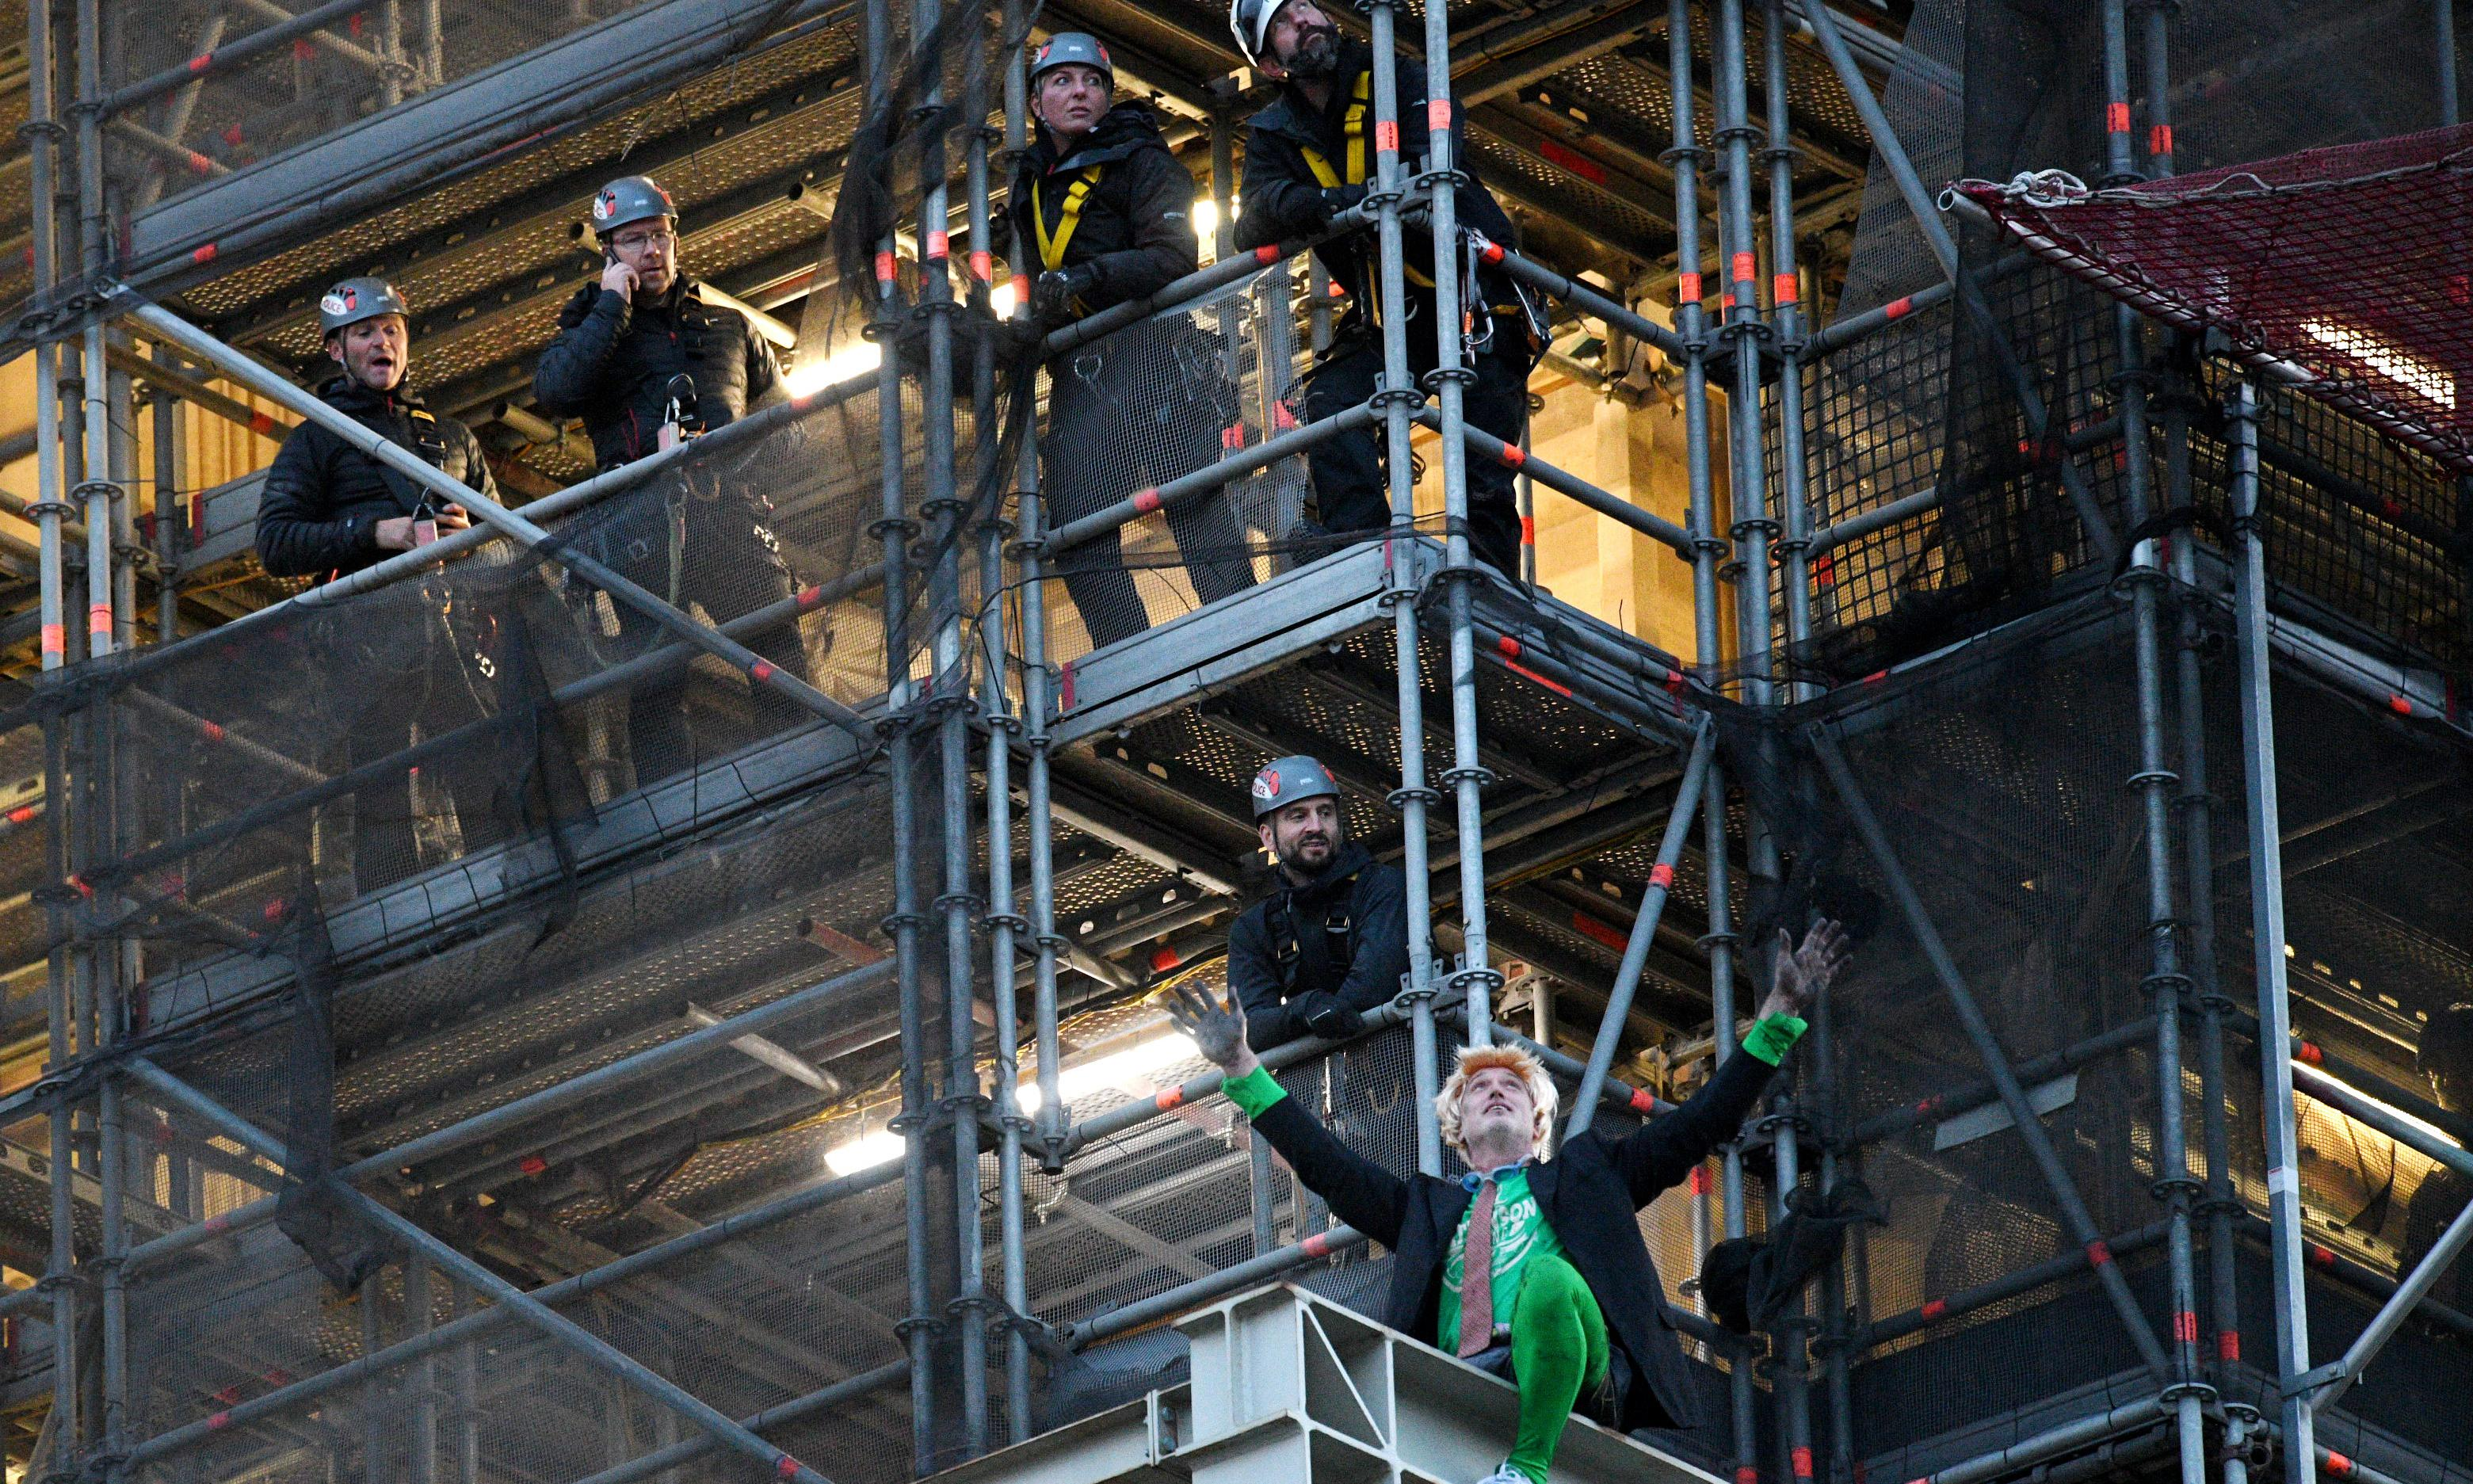 Extinction Rebellion protester removed from Big Ben's tower